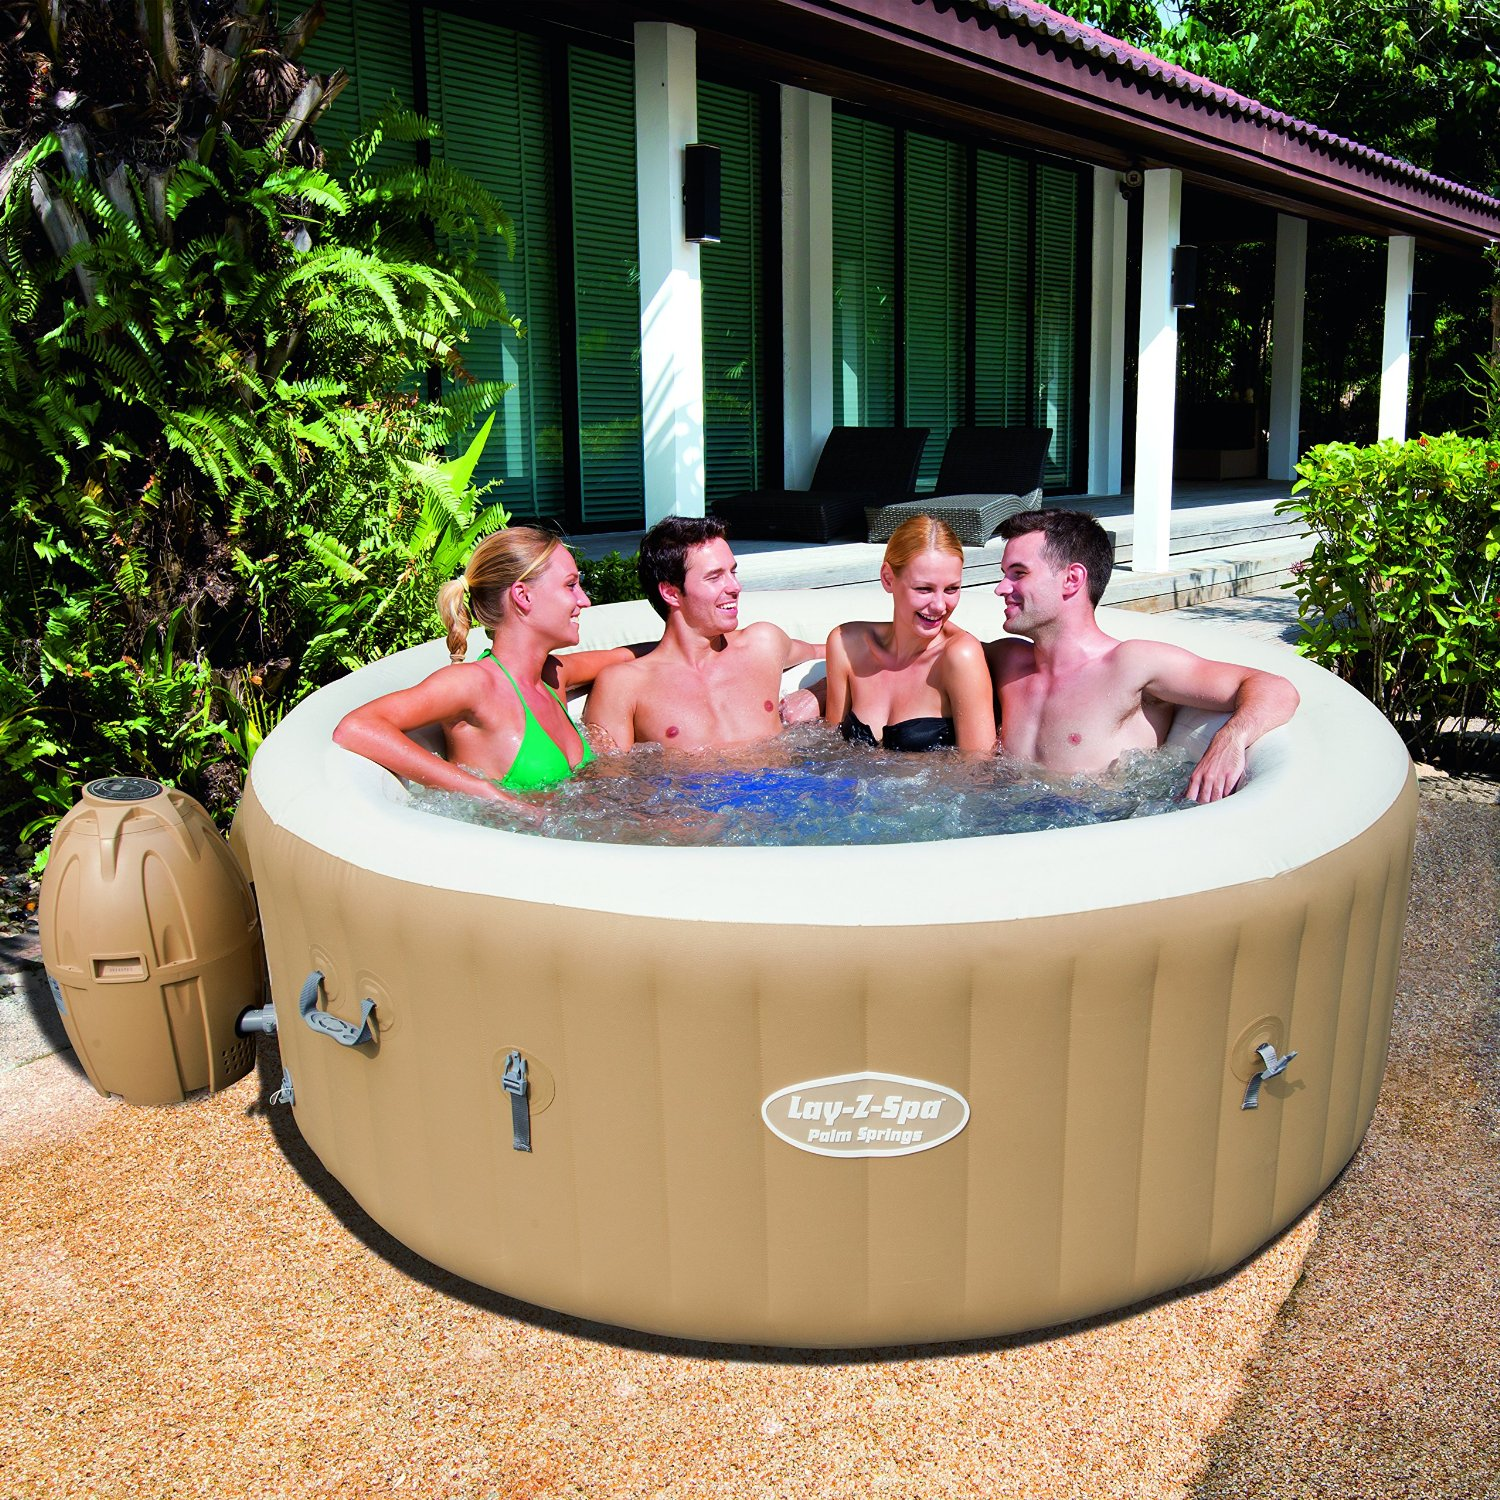 lay z spa palm springs inflatable hot tub spa review. Black Bedroom Furniture Sets. Home Design Ideas